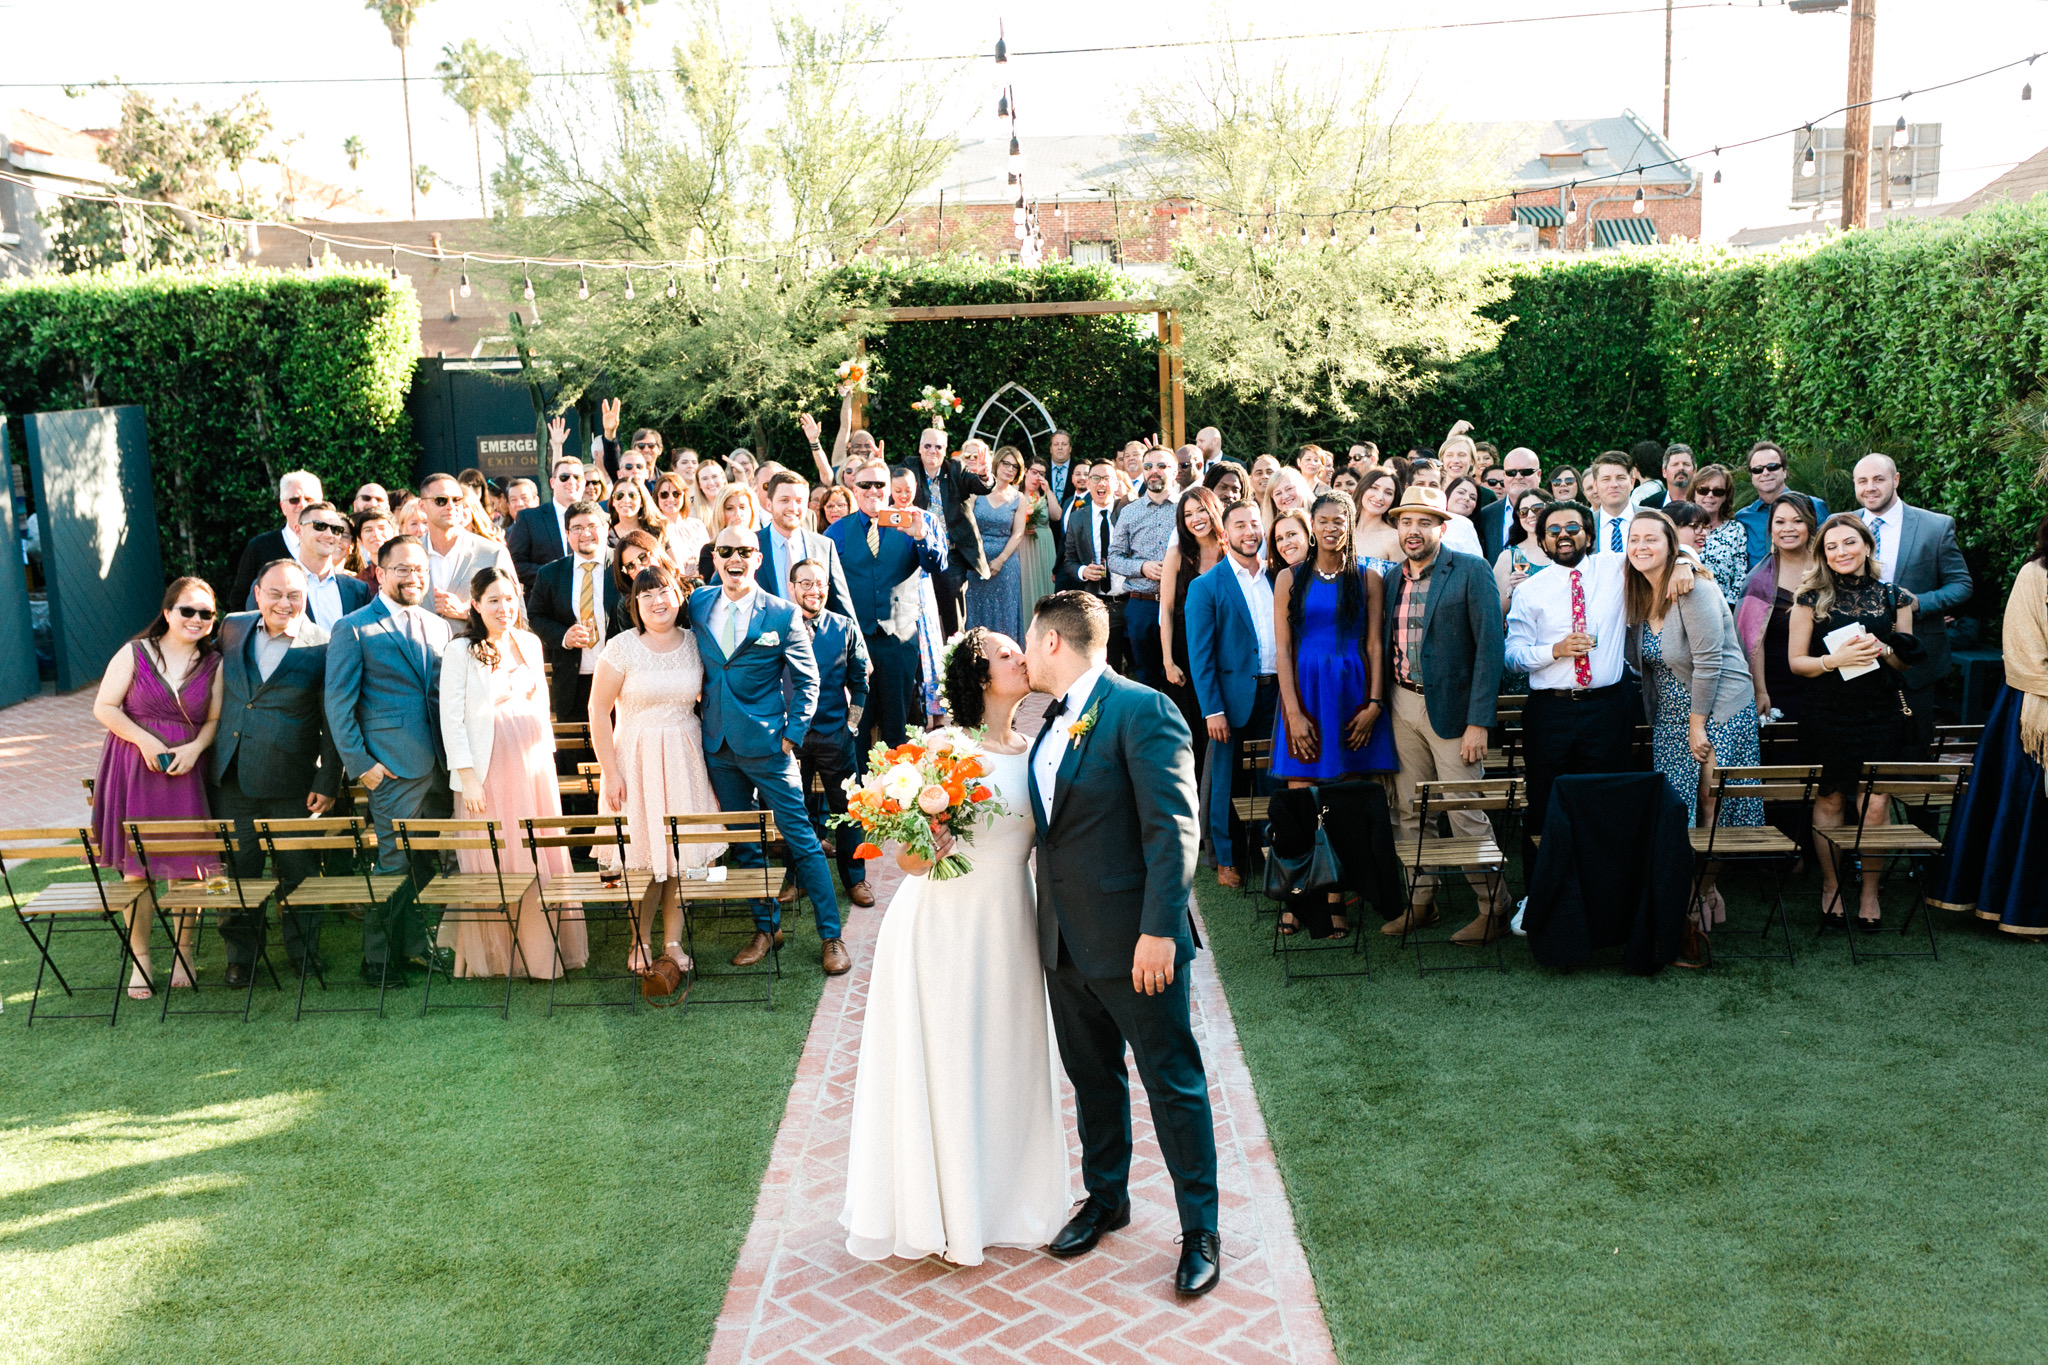 The Ruby Street outdoor ceremony